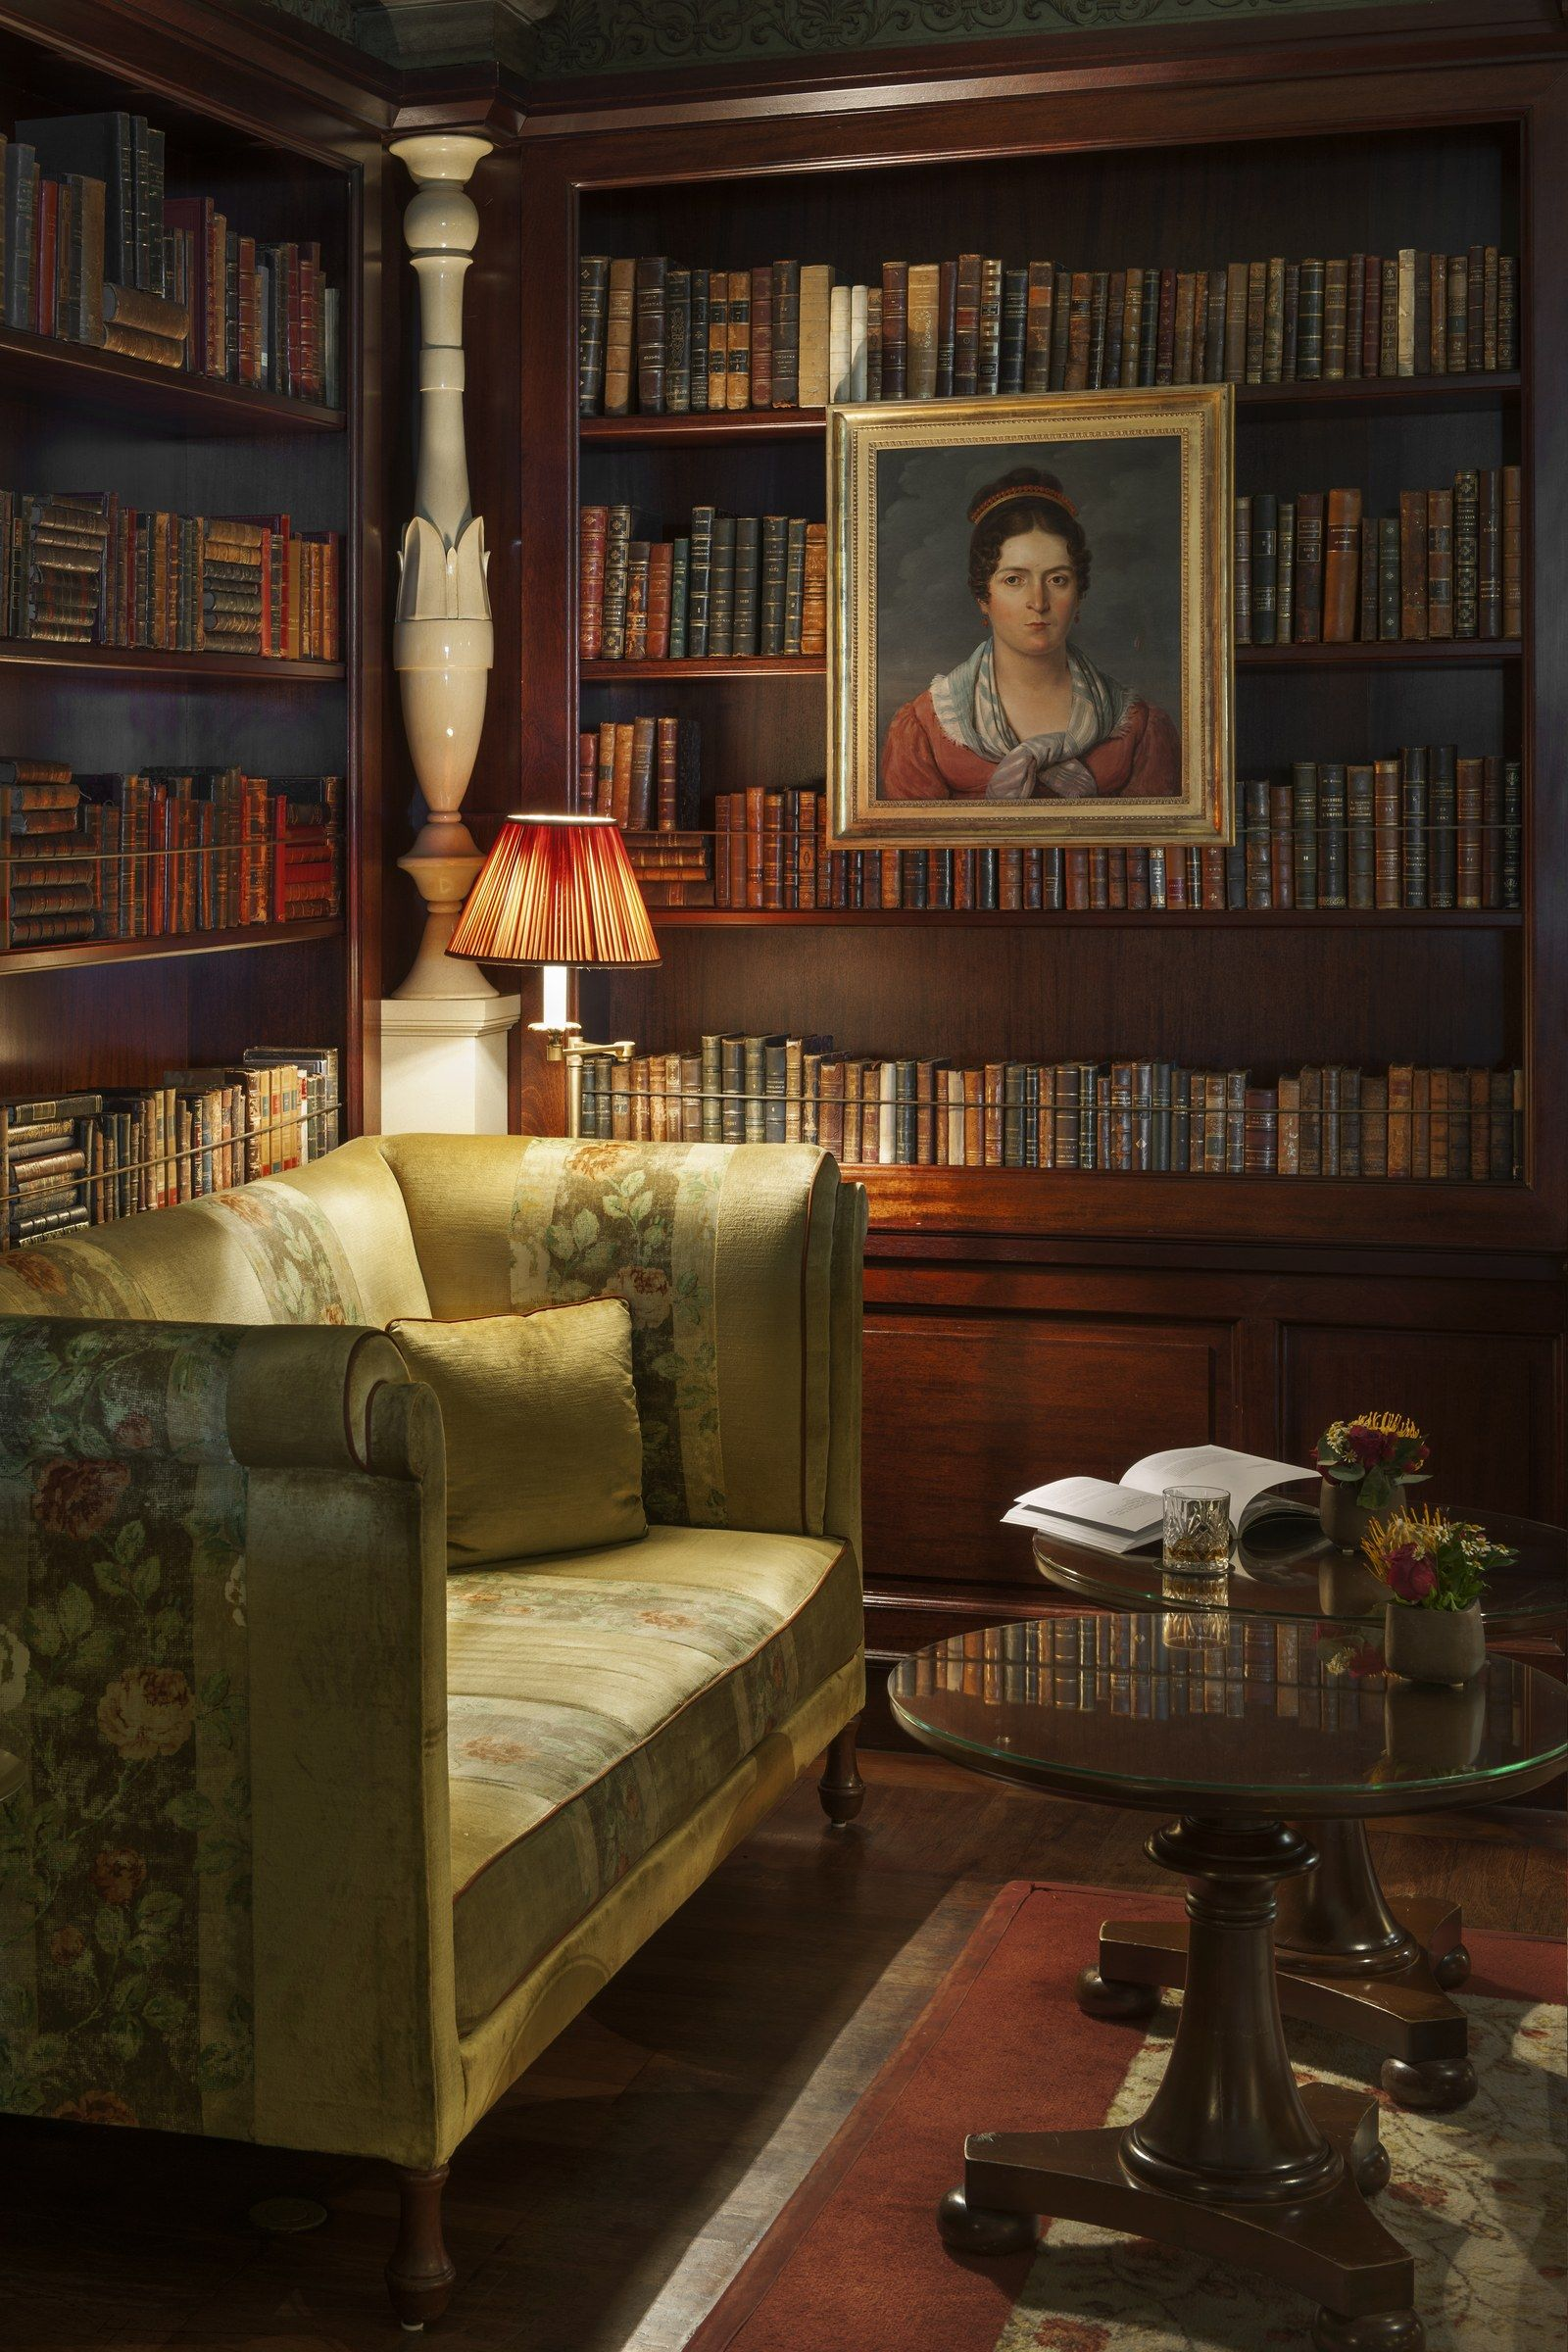 Classic Home Library Design: The World's Best-Looking Library Bars In 2020 (With Images